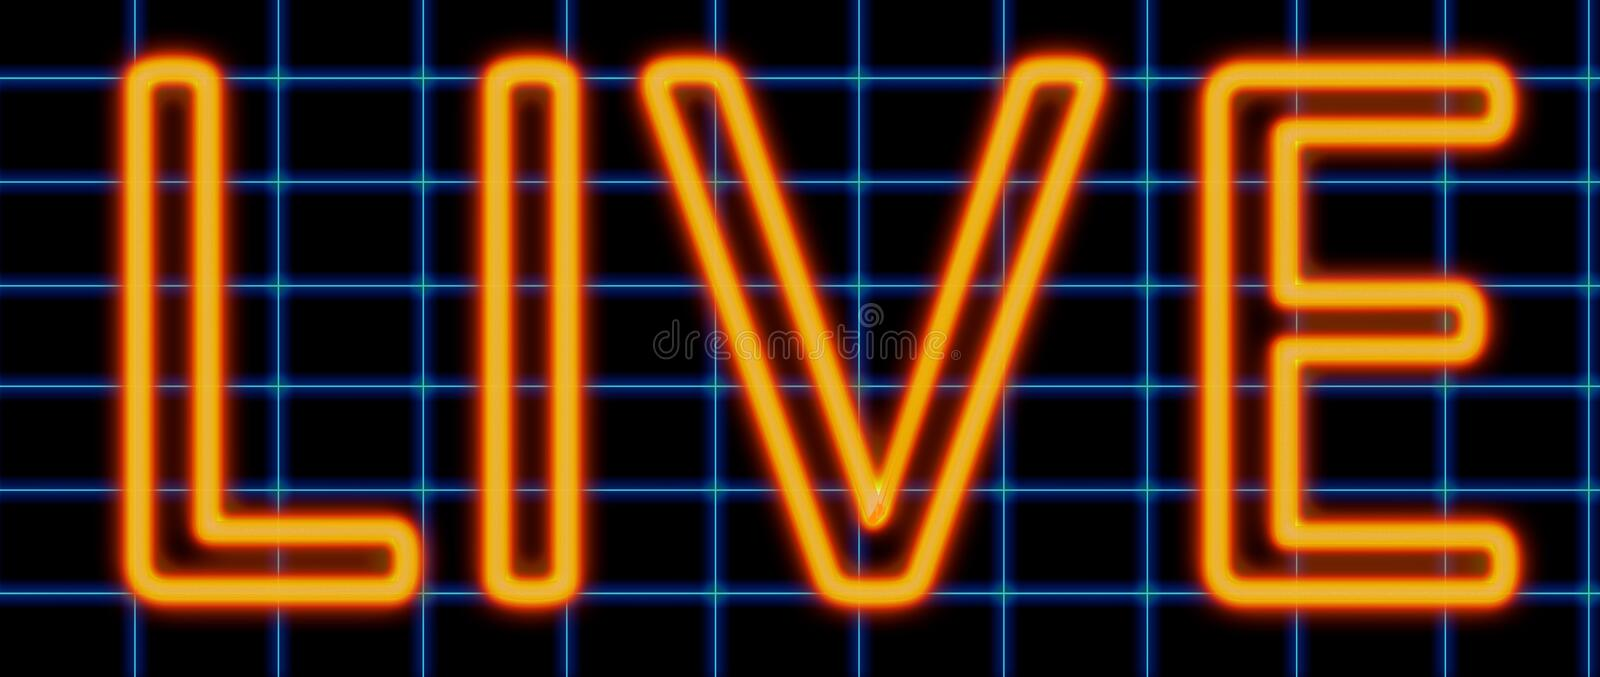 Live neon sign royalty free illustration